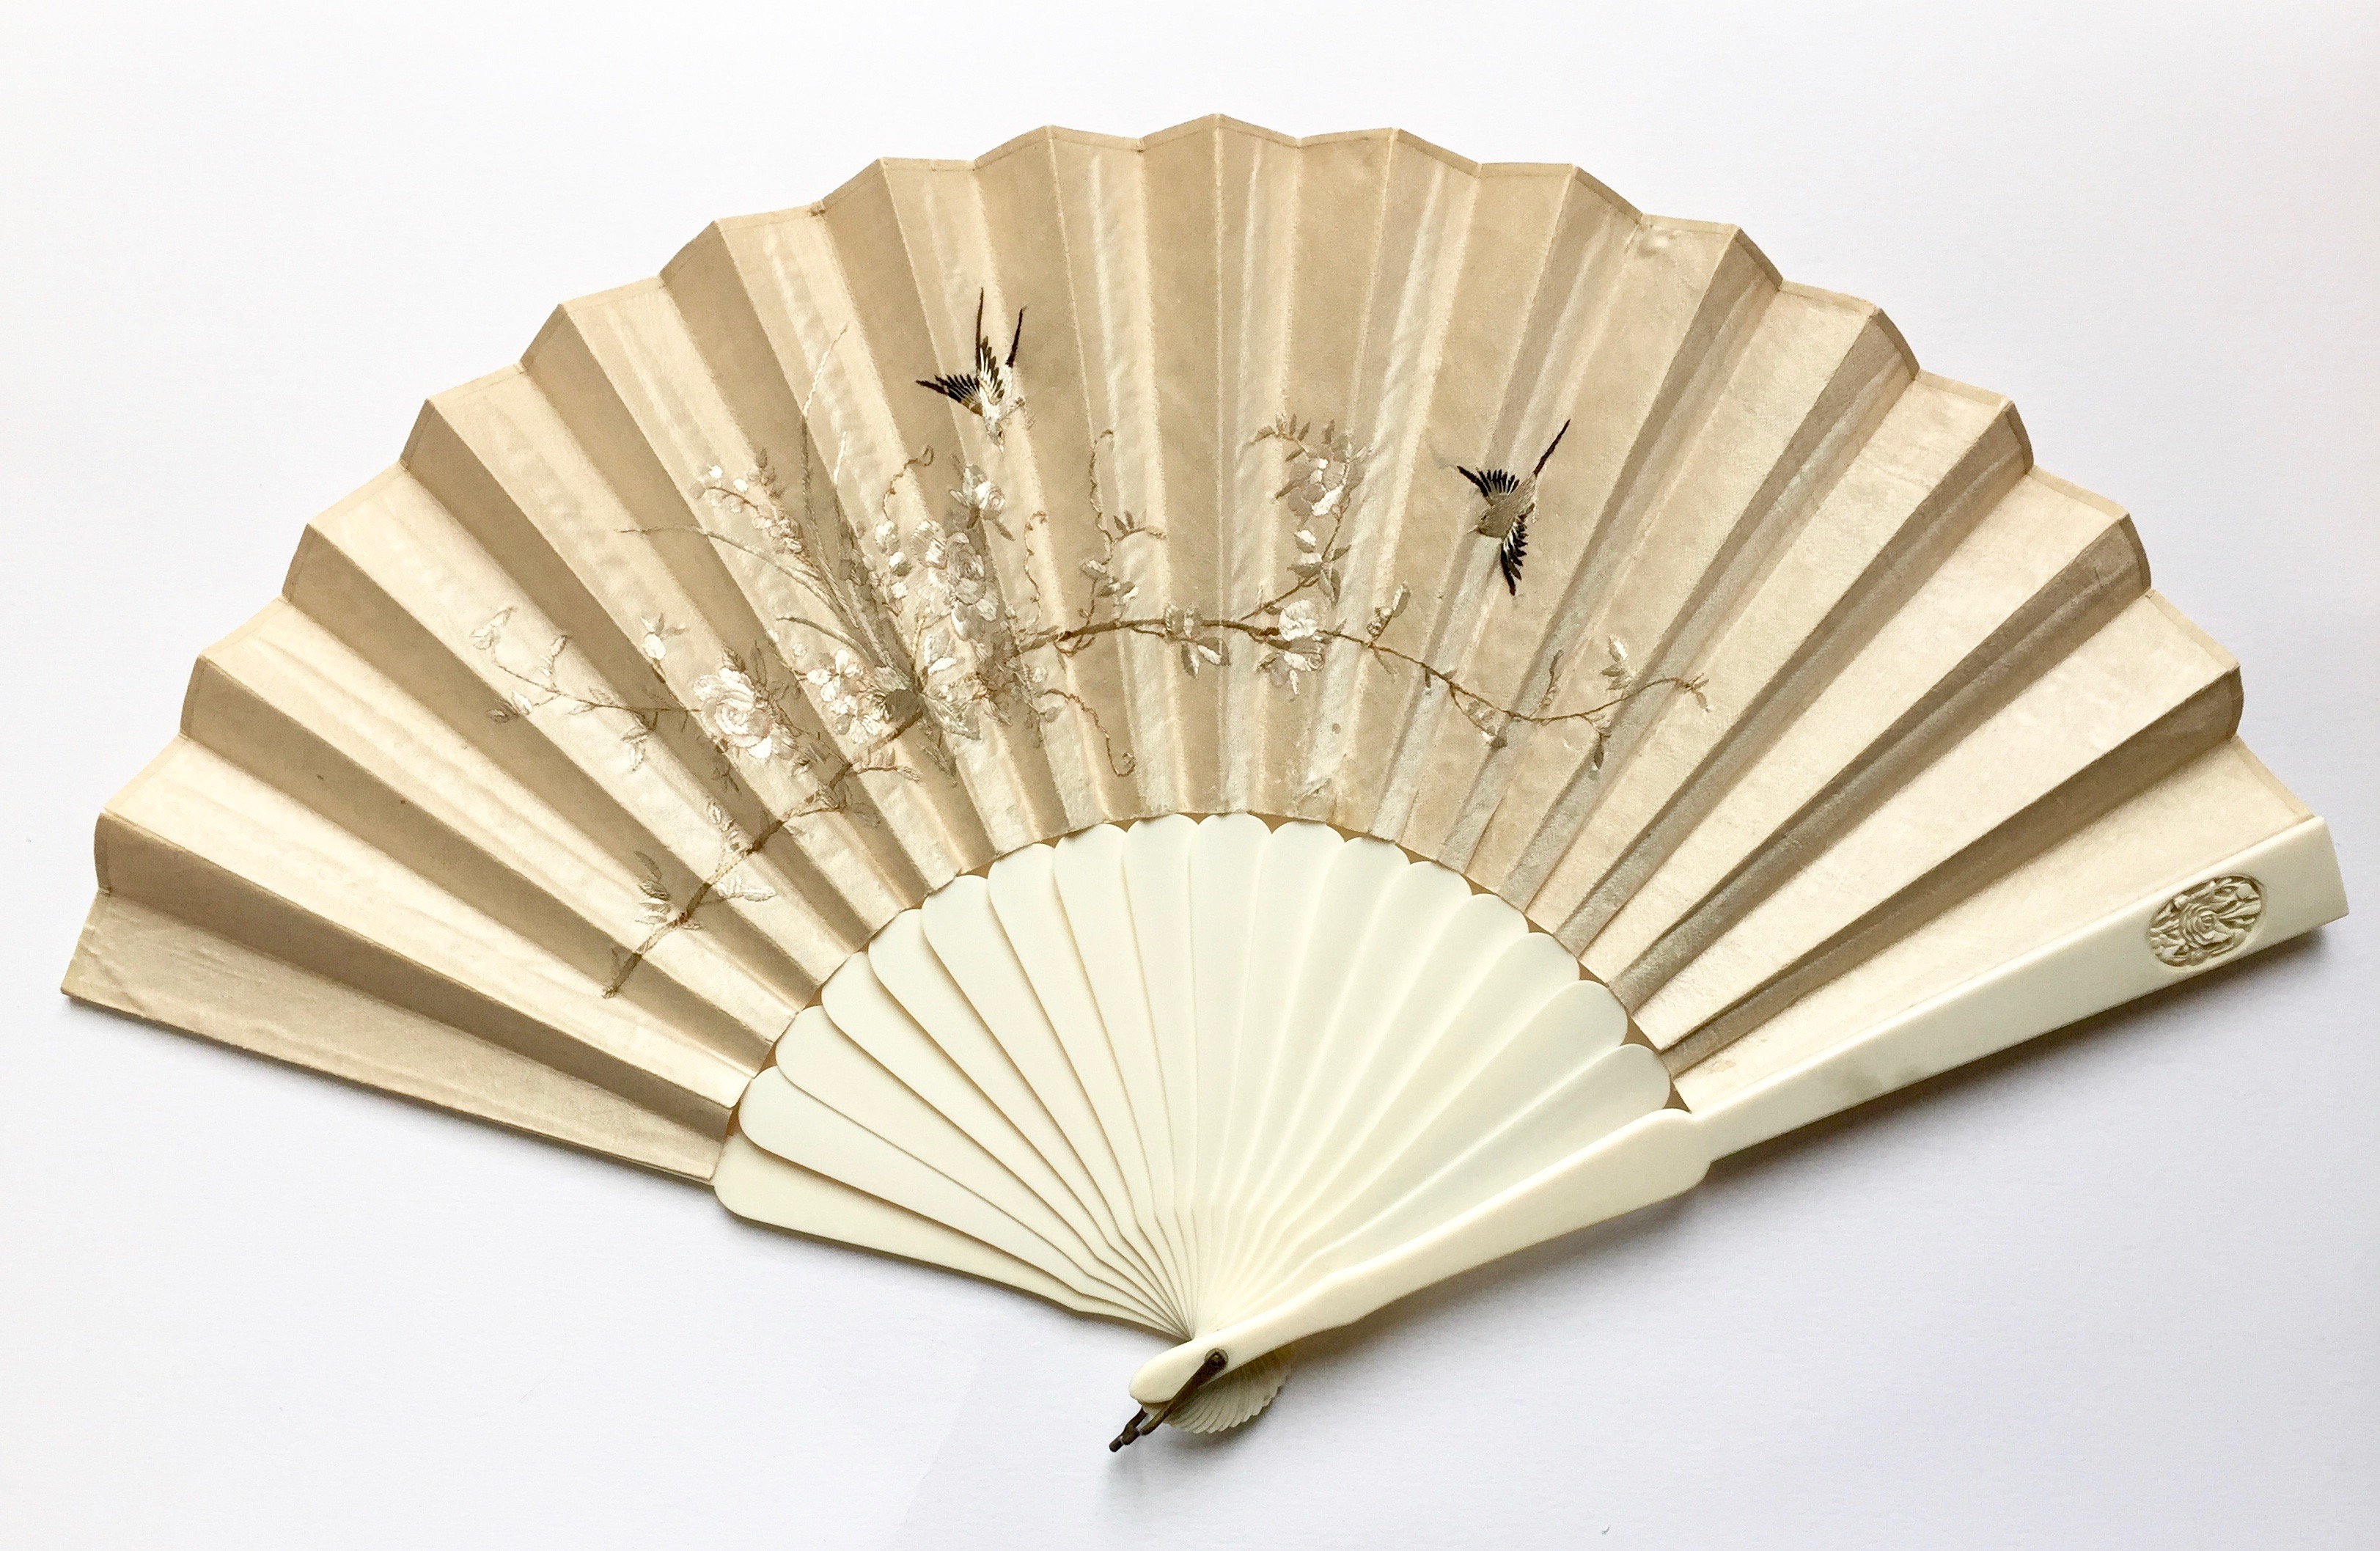 ivory sticks Handfan after conservation